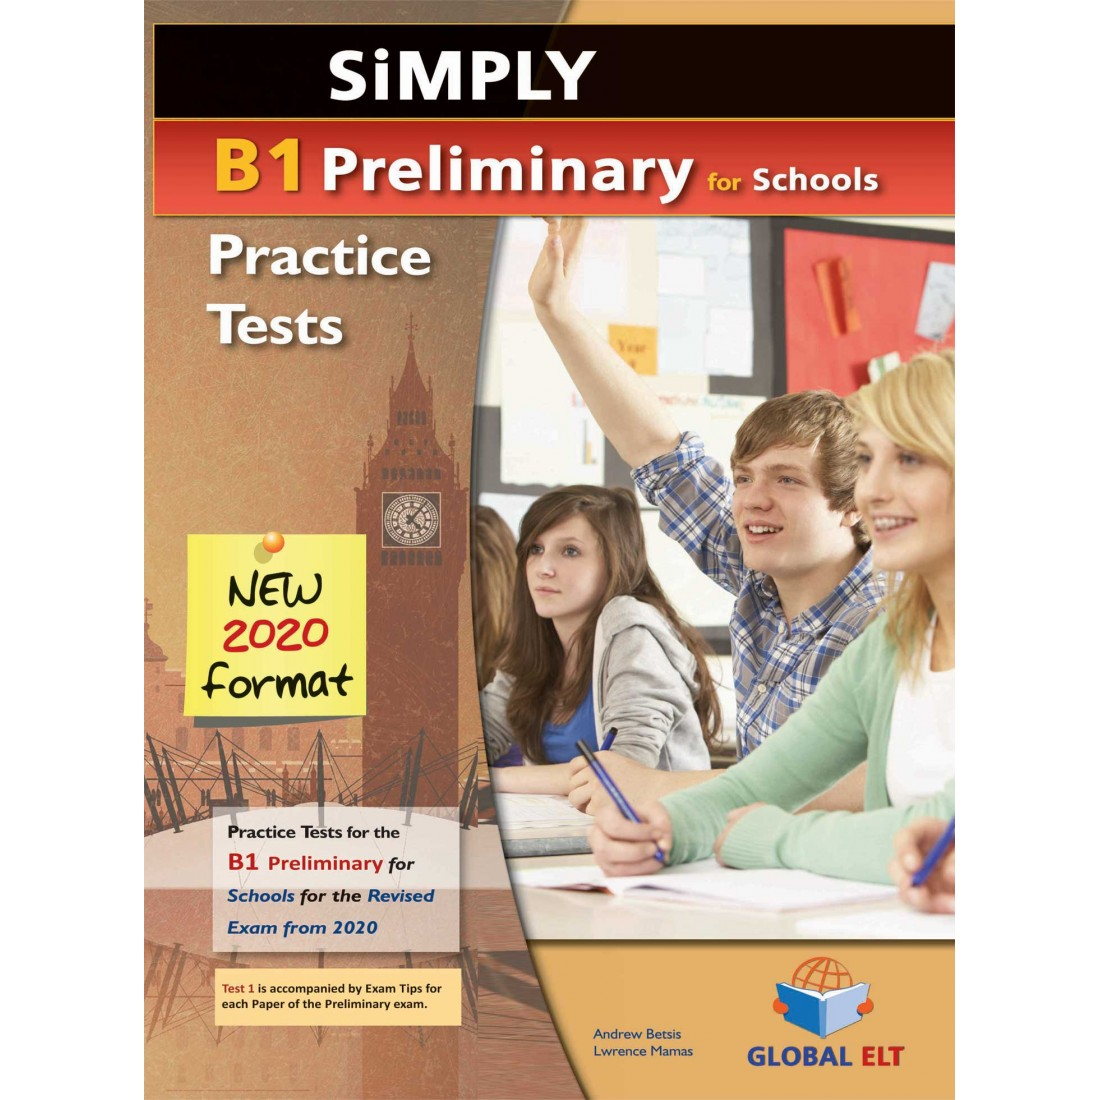 SIMPLY B1 PRELIMINARY FOR SCHOOLS 8 PRACTICE TESTS CD CLASS NEW 2020 FORMAT